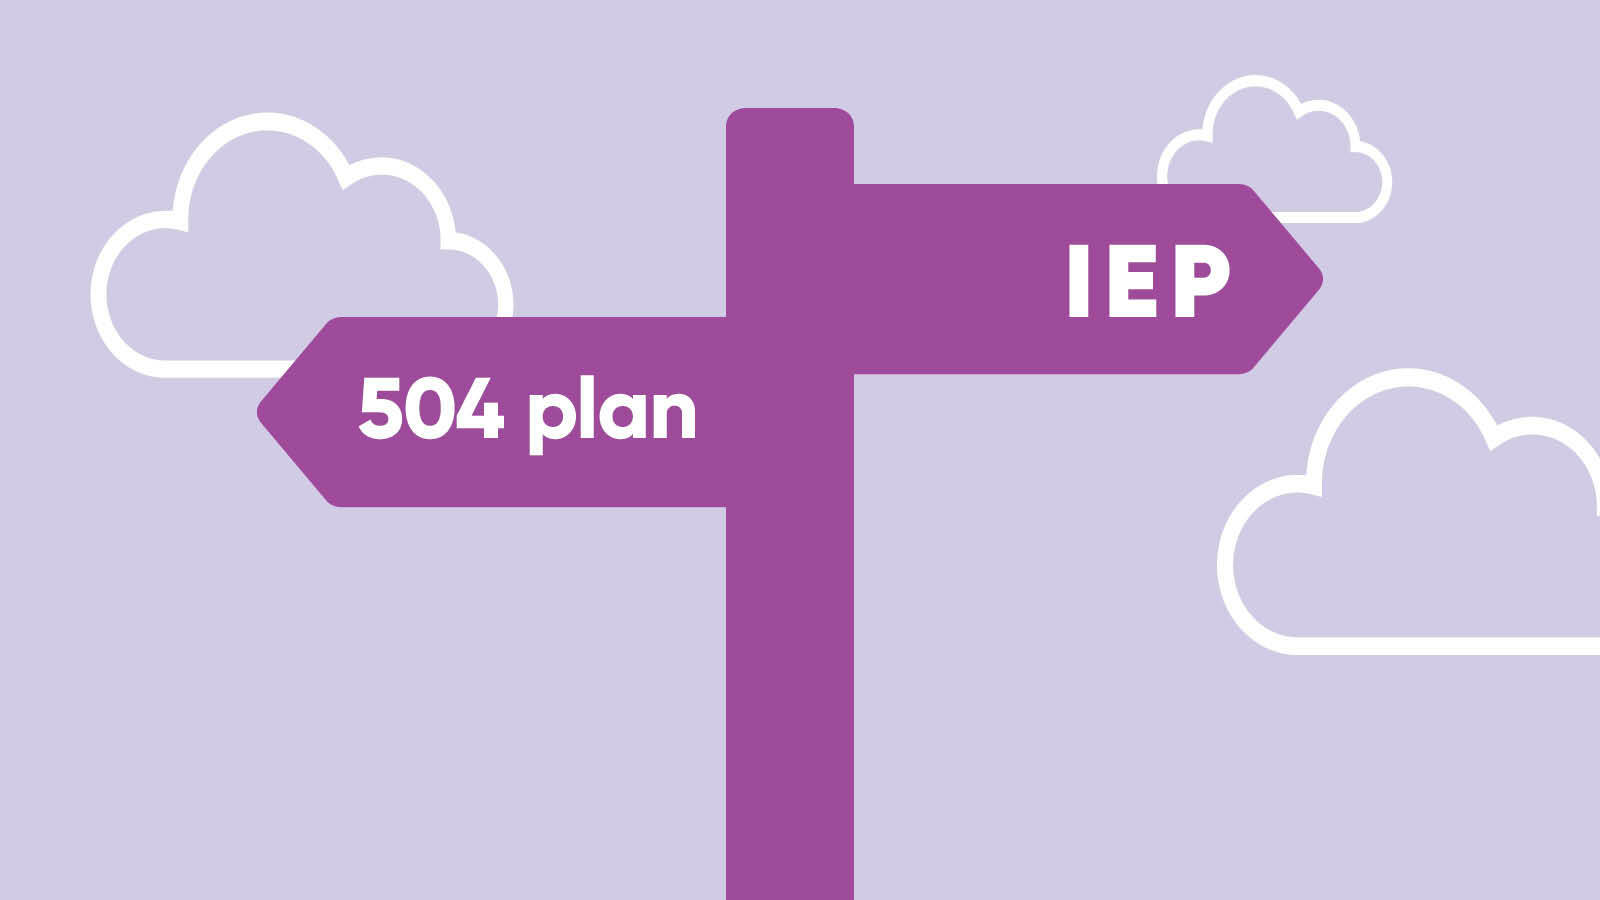 Planning for 504 and IEP Success in a Post-Pandemic World